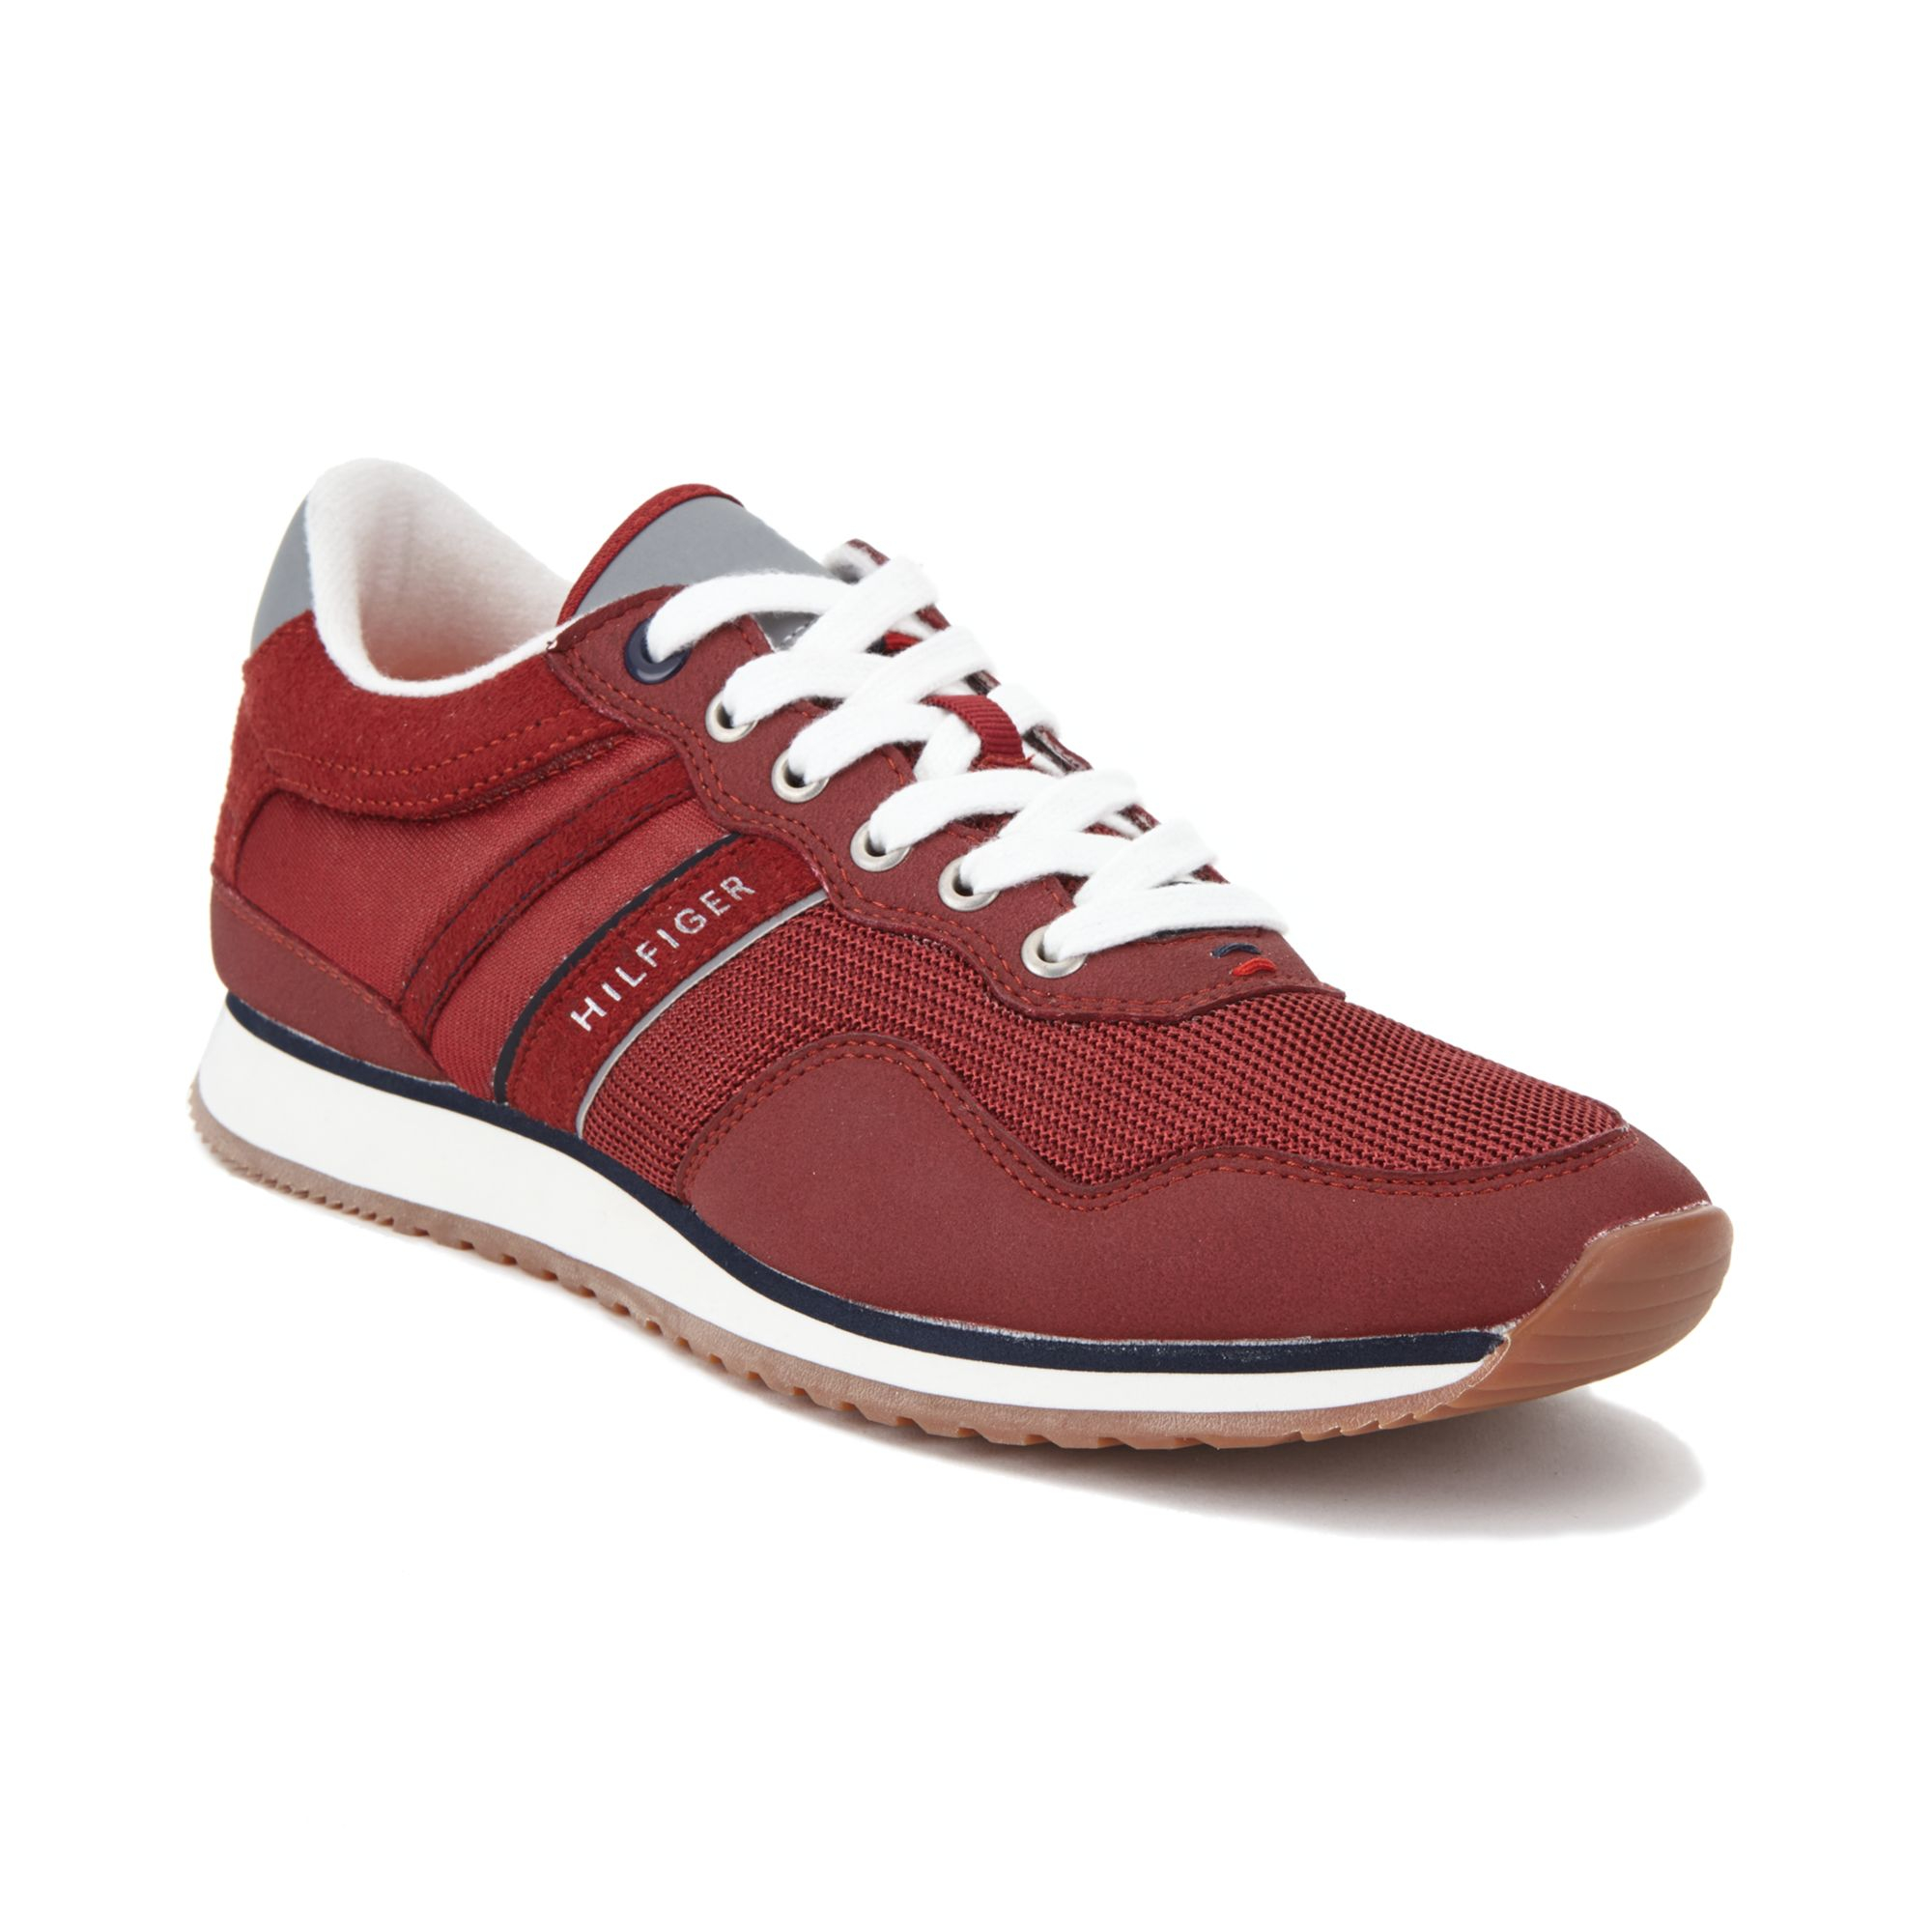 b3769a34fbecc9 Lyst - Tommy Hilfiger Marcus Sneakers in Red for Men